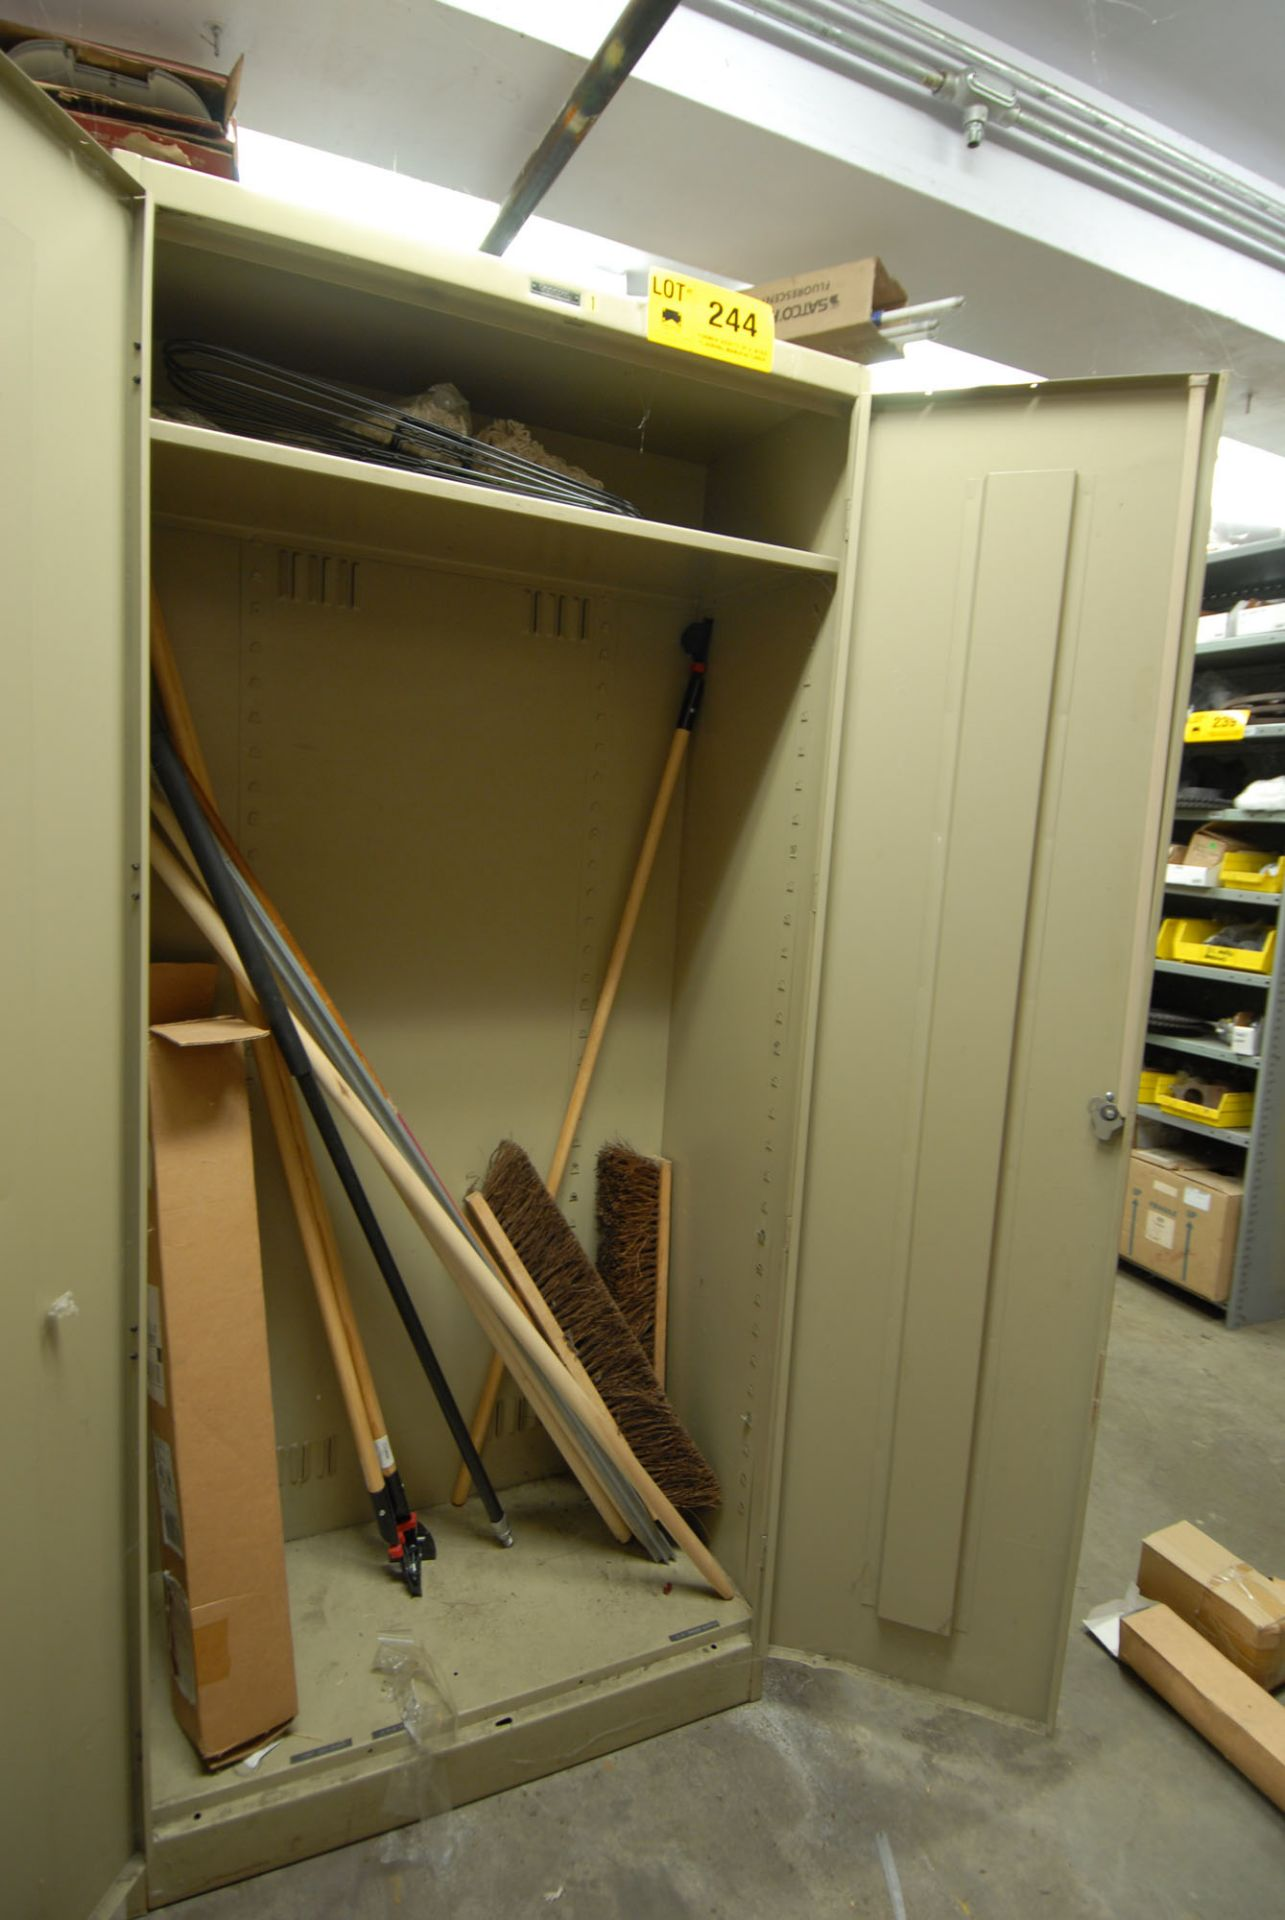 Lot 244 - LOT/ CABINET WITH CONTENTS (BROOMS)